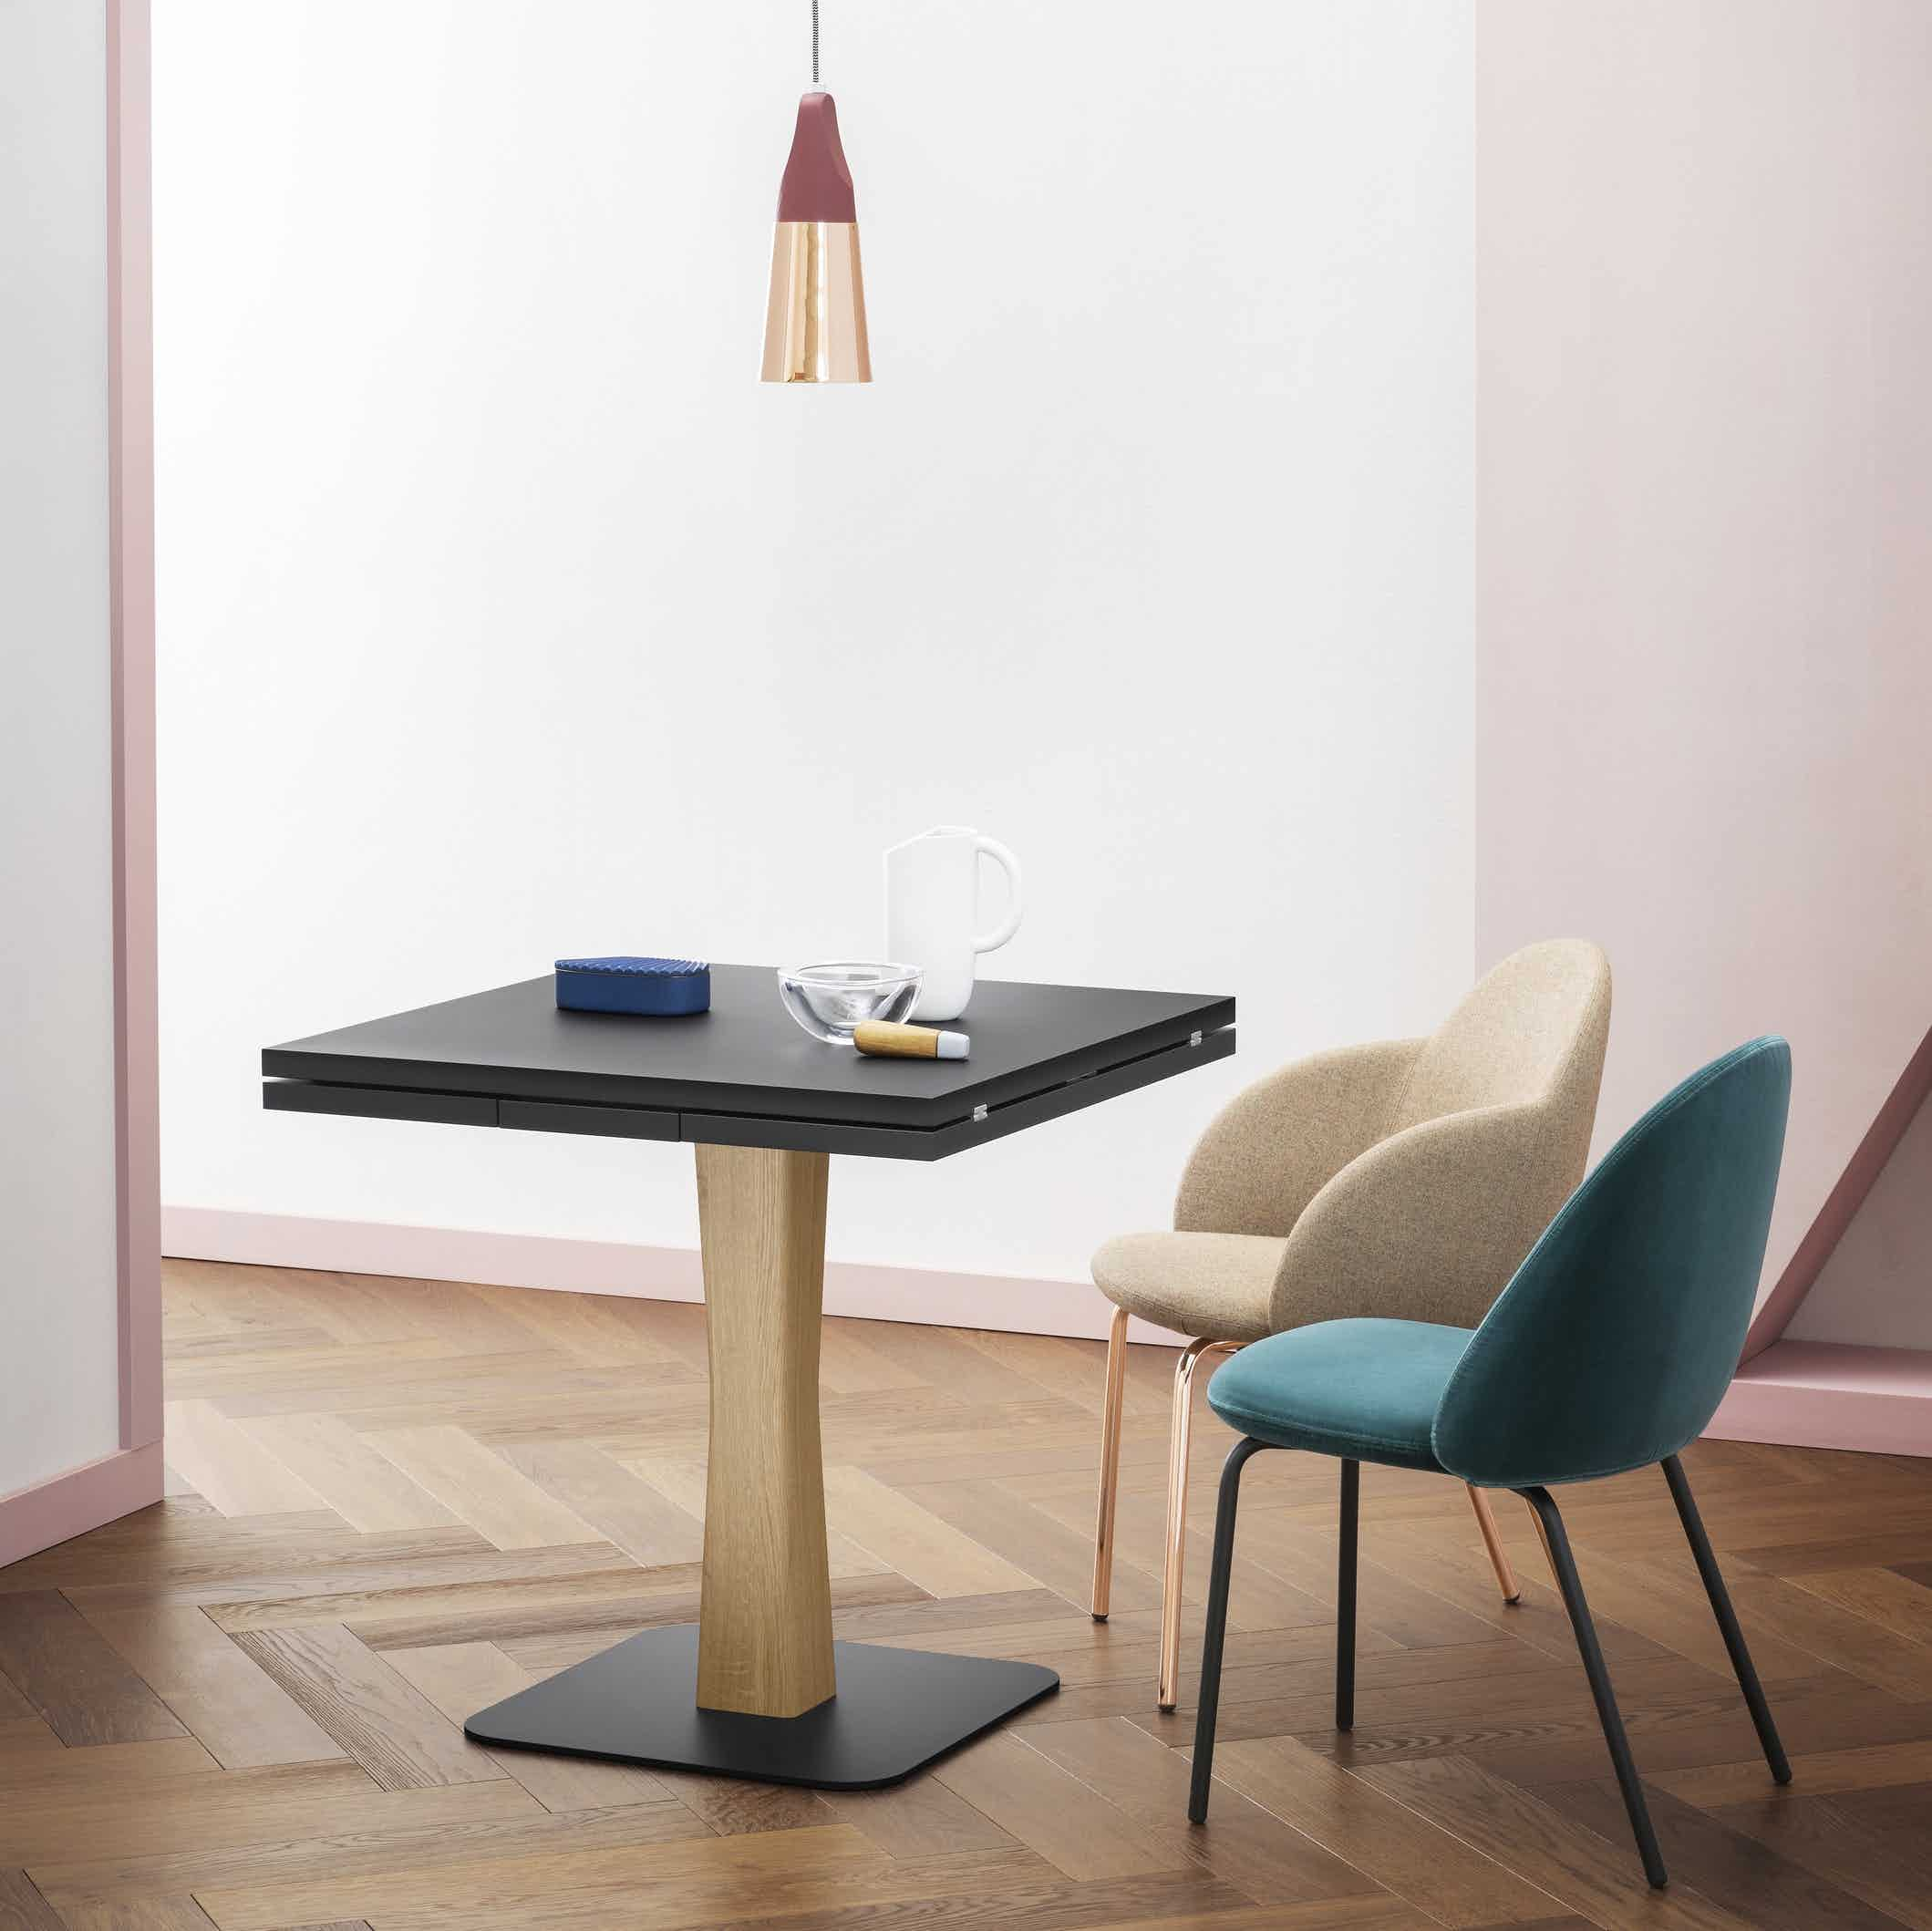 Miniforms Gaultiero Table Angle Haute Living